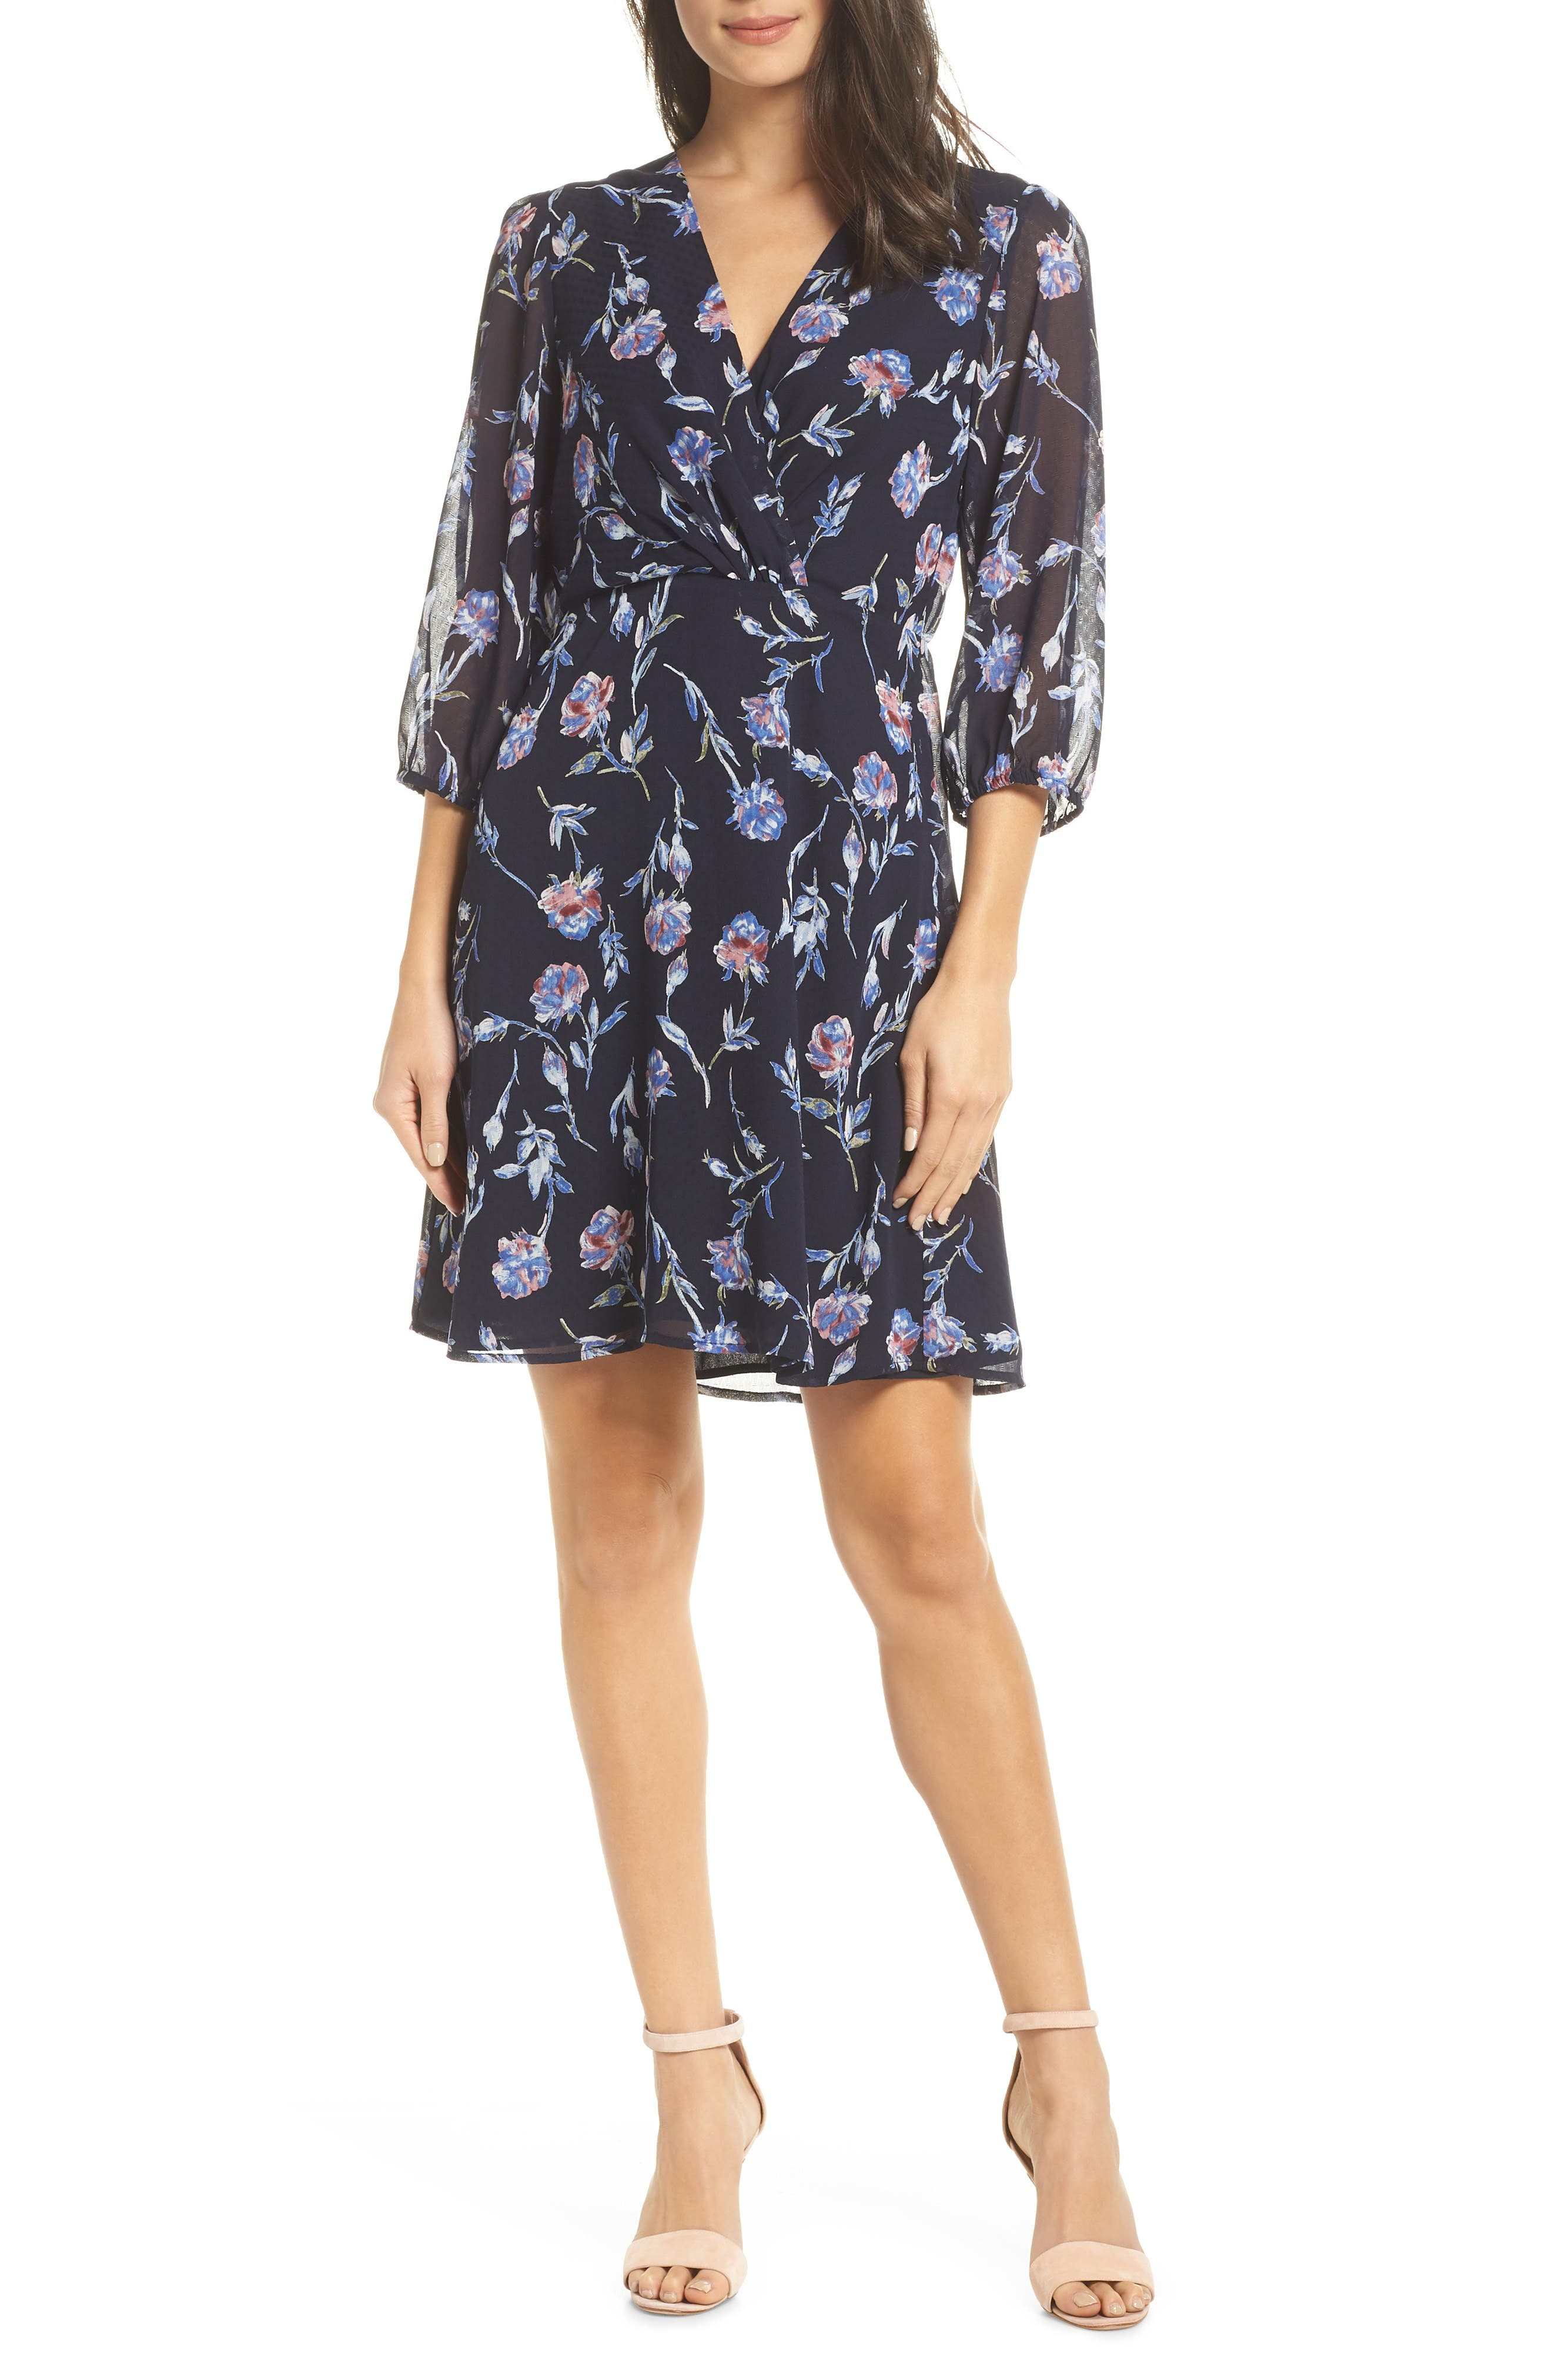 19 COOPER Floral Chiffon Dress in Navy Floral